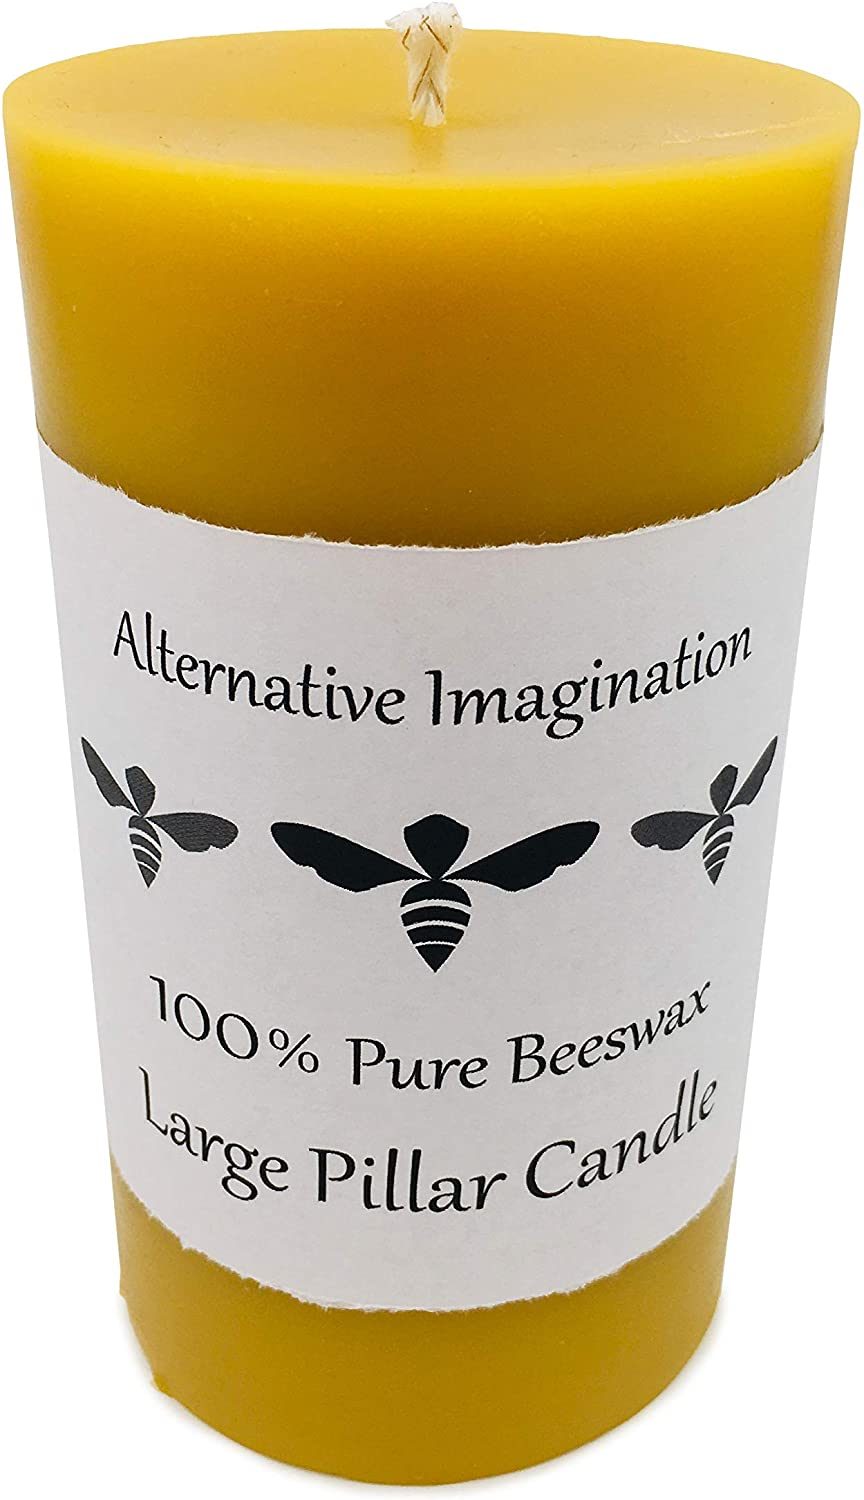 Alternative Imagination 100% Pure Pillar Candle Large Purchase Beeswax Popular shop is the lowest price challenge